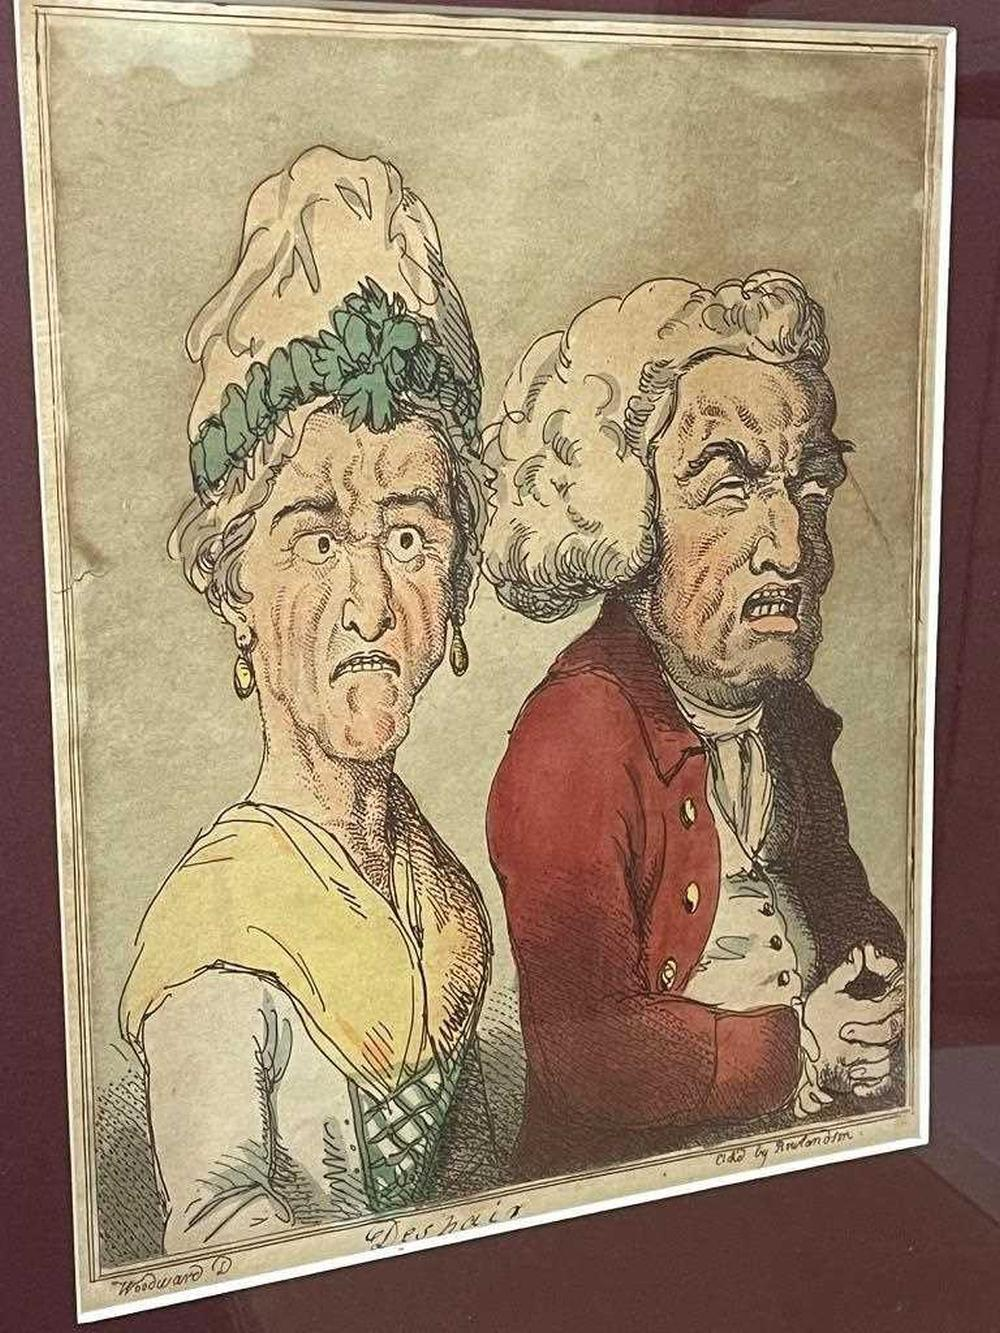 Thomas Rowlandson (1757-1827) after George M. Woodward Le Brun Travested, or Caricatures of the Passions, a group of eight framed character etchings (from a set of 20), with hand colour, captions below, some browning and staining, each approx. 26...